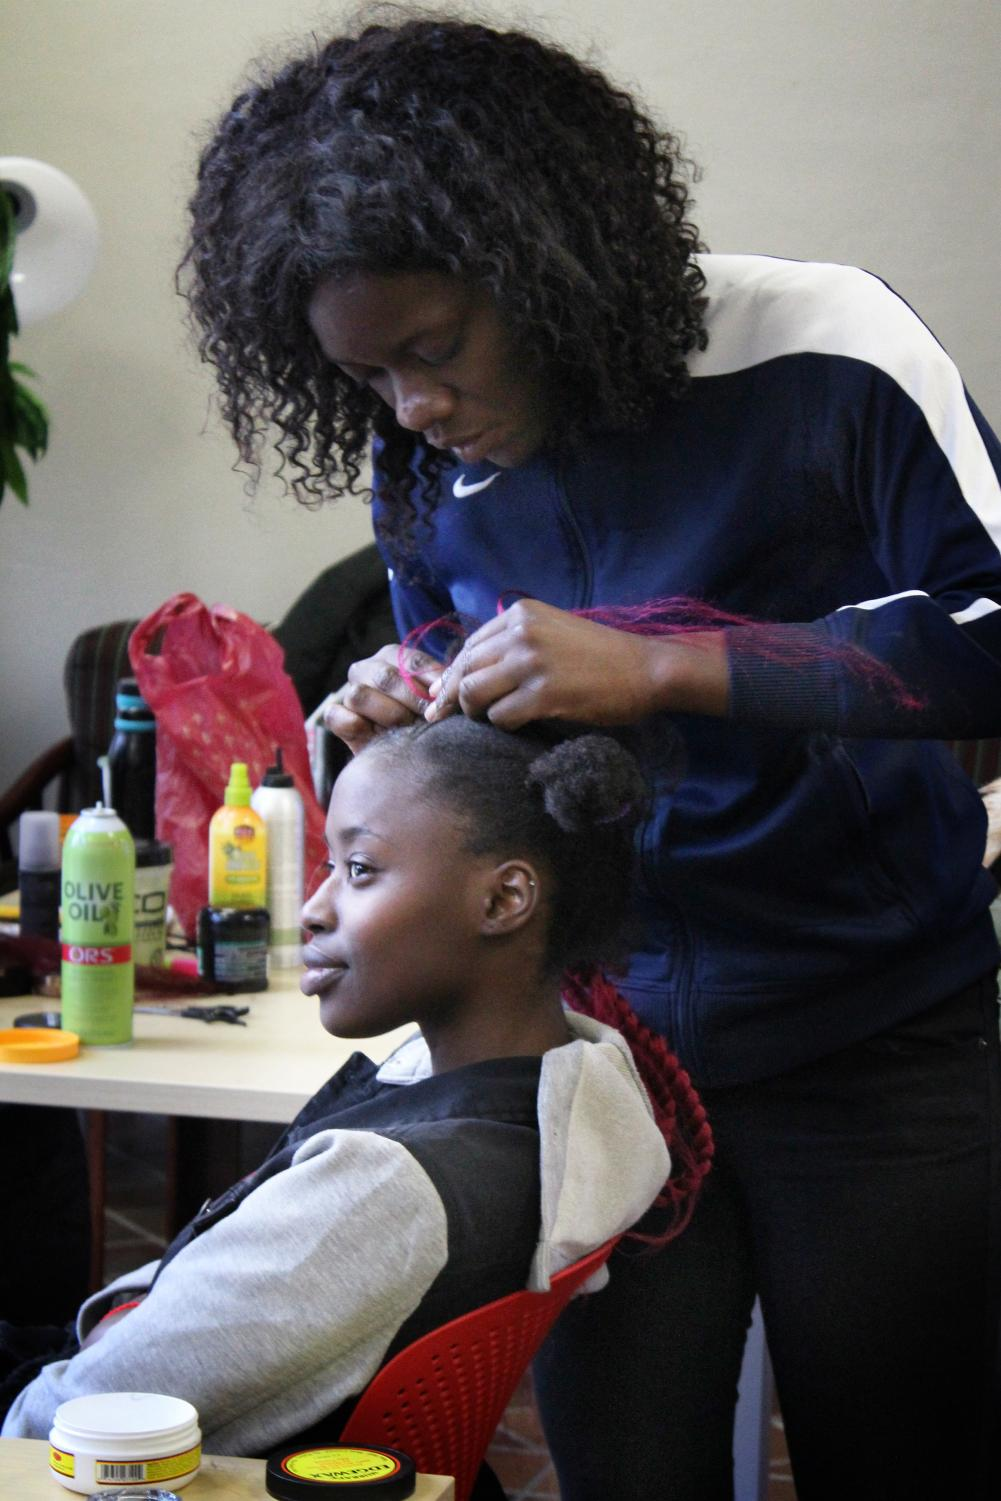 Braider Yemisi Genebar, right, works on her model, Raquel Kiddu, left, on March 23, 2018 in the Malcolm X Cultural Center located in the University of Massachusetts Amherst in Amherst, Mass. Genebar ultimately opts for a combination of techniques including